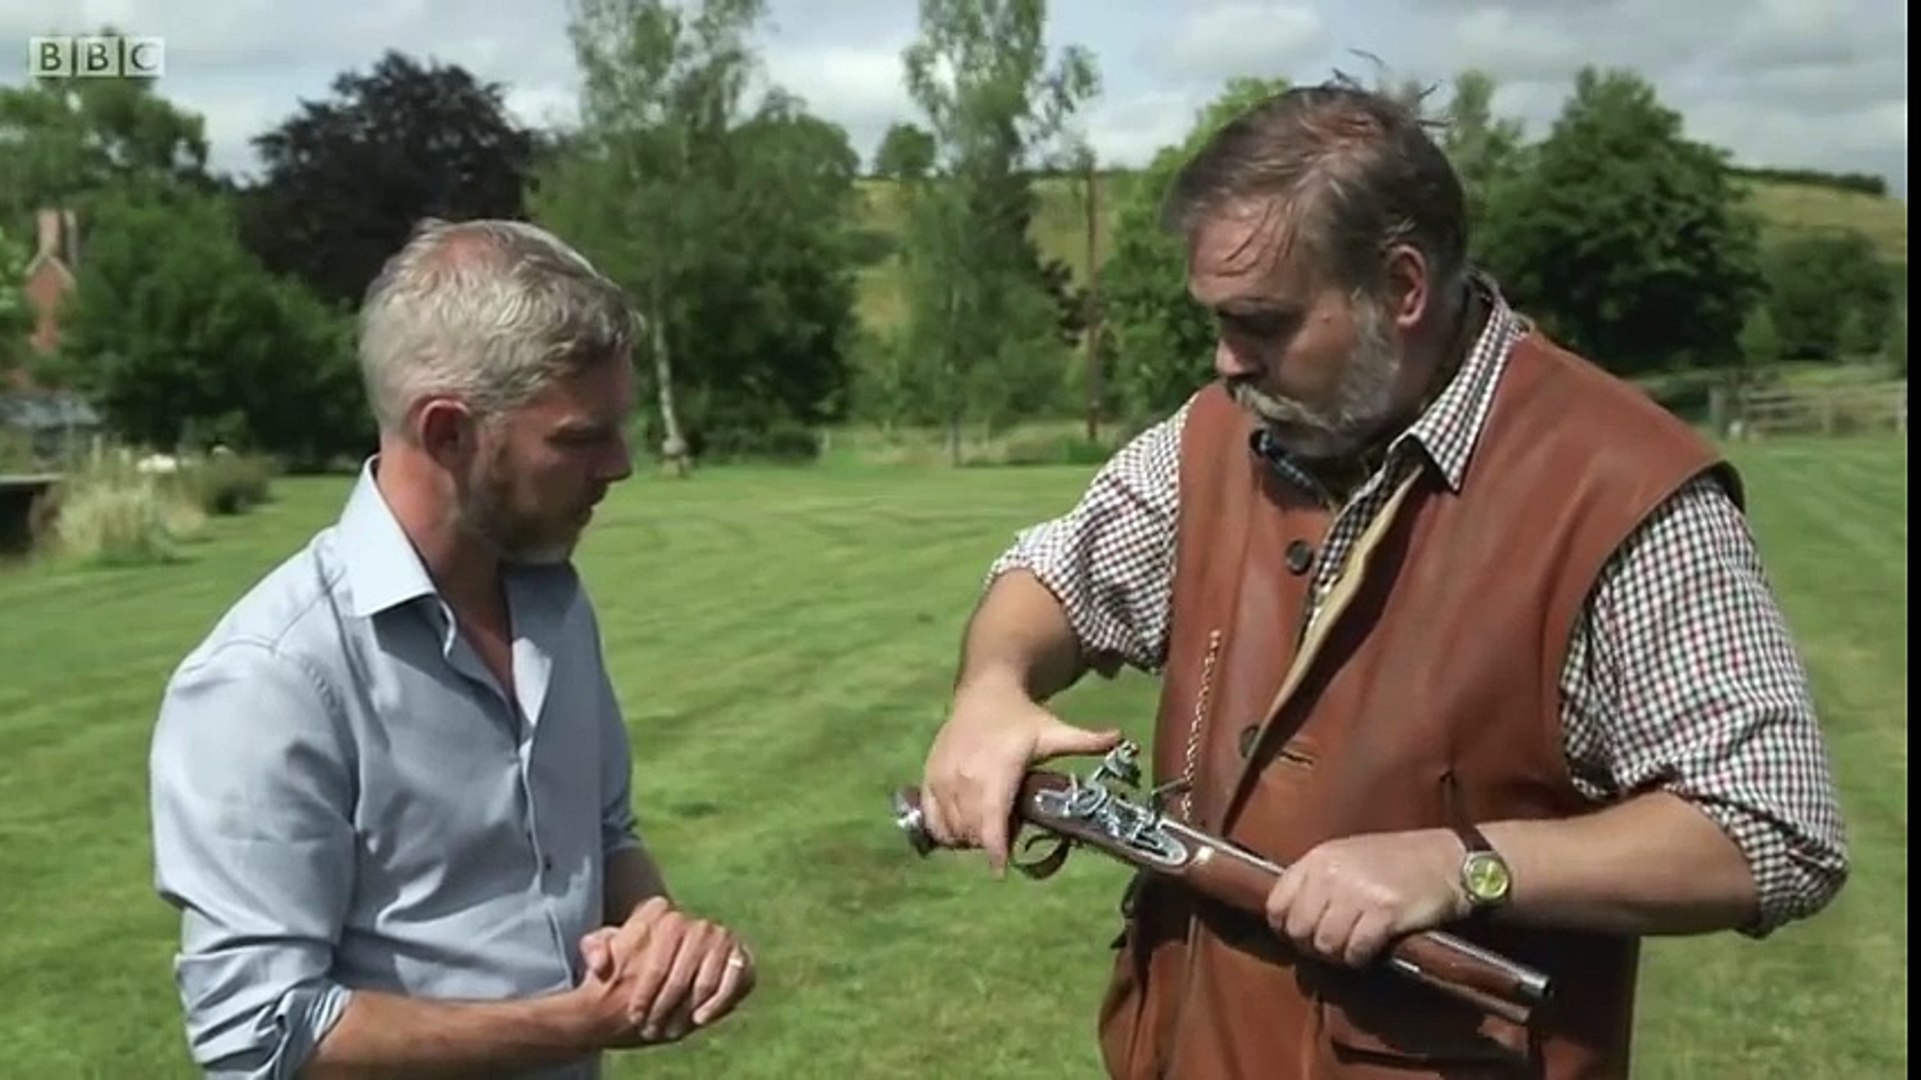 britains-outlaws-highwaymen-pirates-and-rogues-bbc-documentary-2015_DocuNow